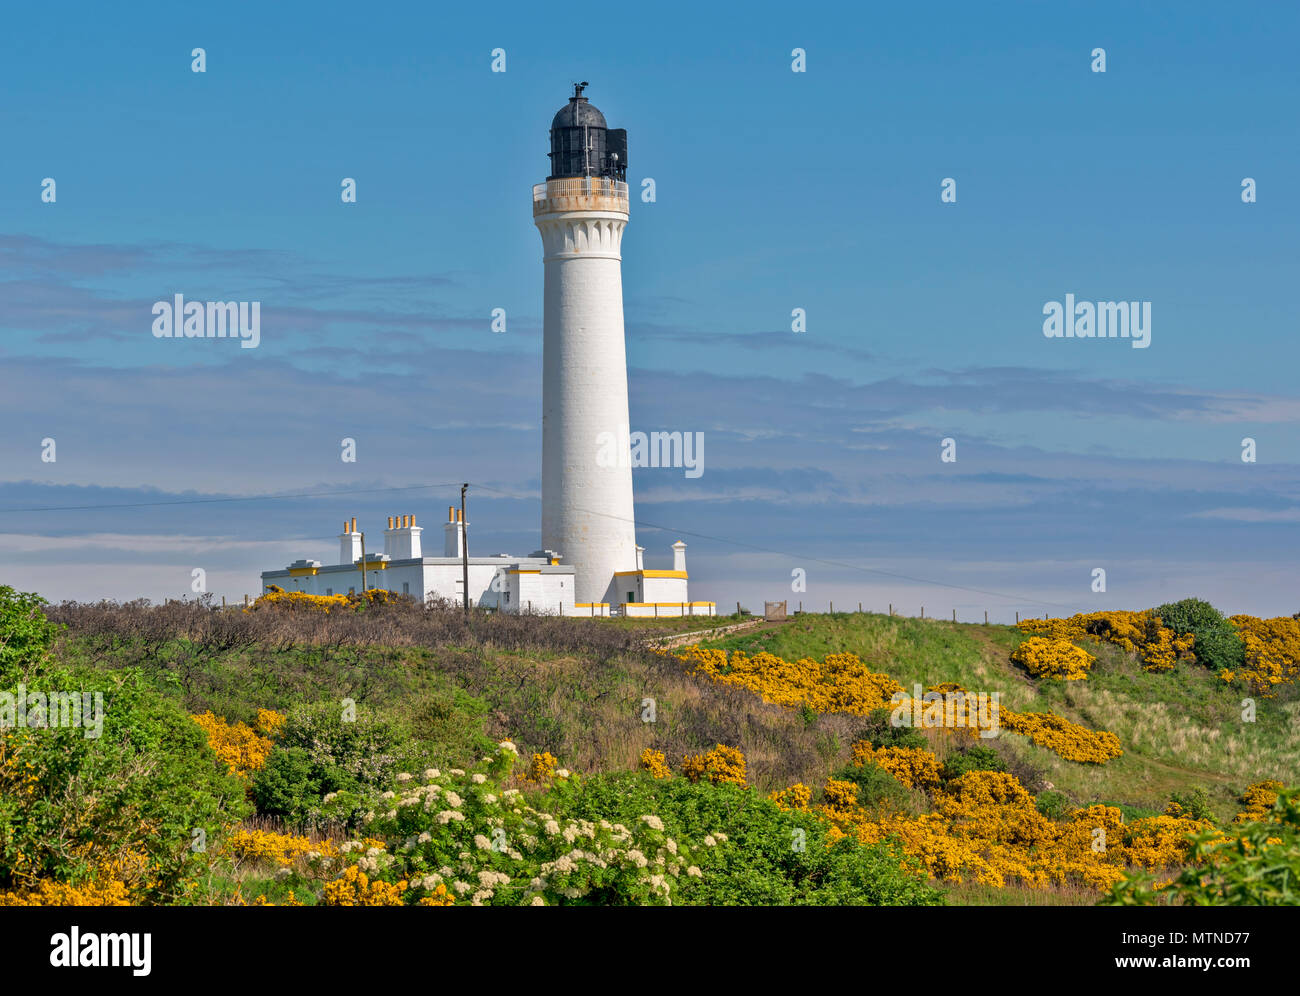 COVESEA LIGHTHOUSE LOSSIEMOUTH BEACH SCOTLAND WHITE COLUMN ON A HILL SURROUNDED BY YELLOW GORSE FLOWERS  EARLY SPRINGTIME - Stock Image